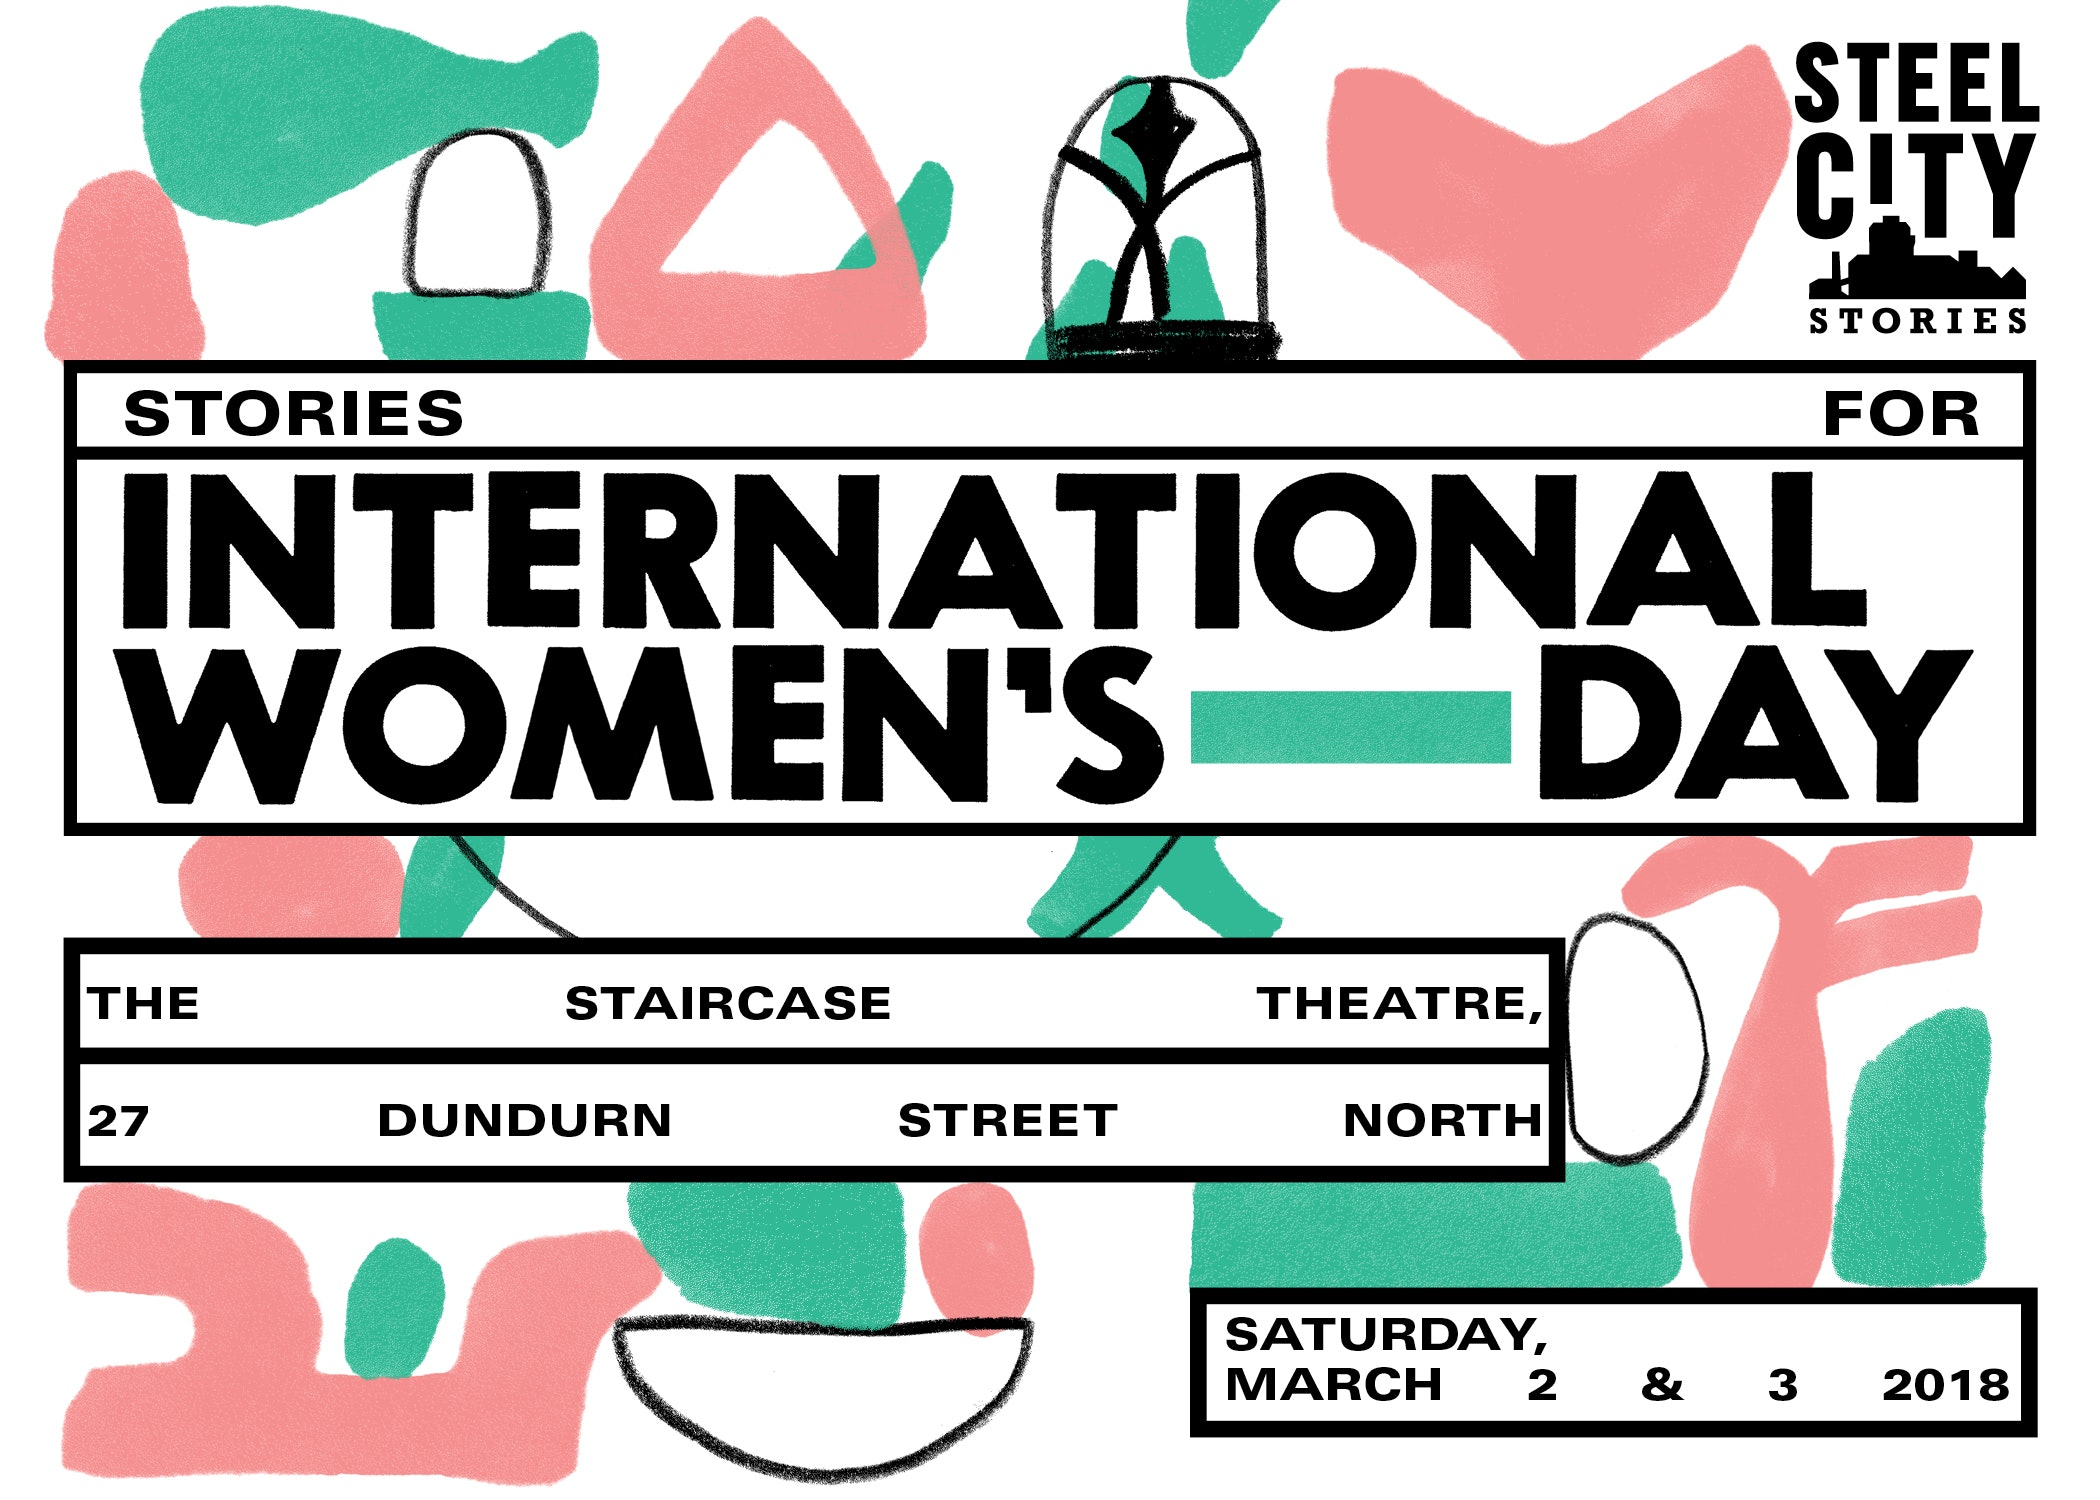 Rbc Life Insurance Quote Steel City Stories Presents Stories For International Women's Day